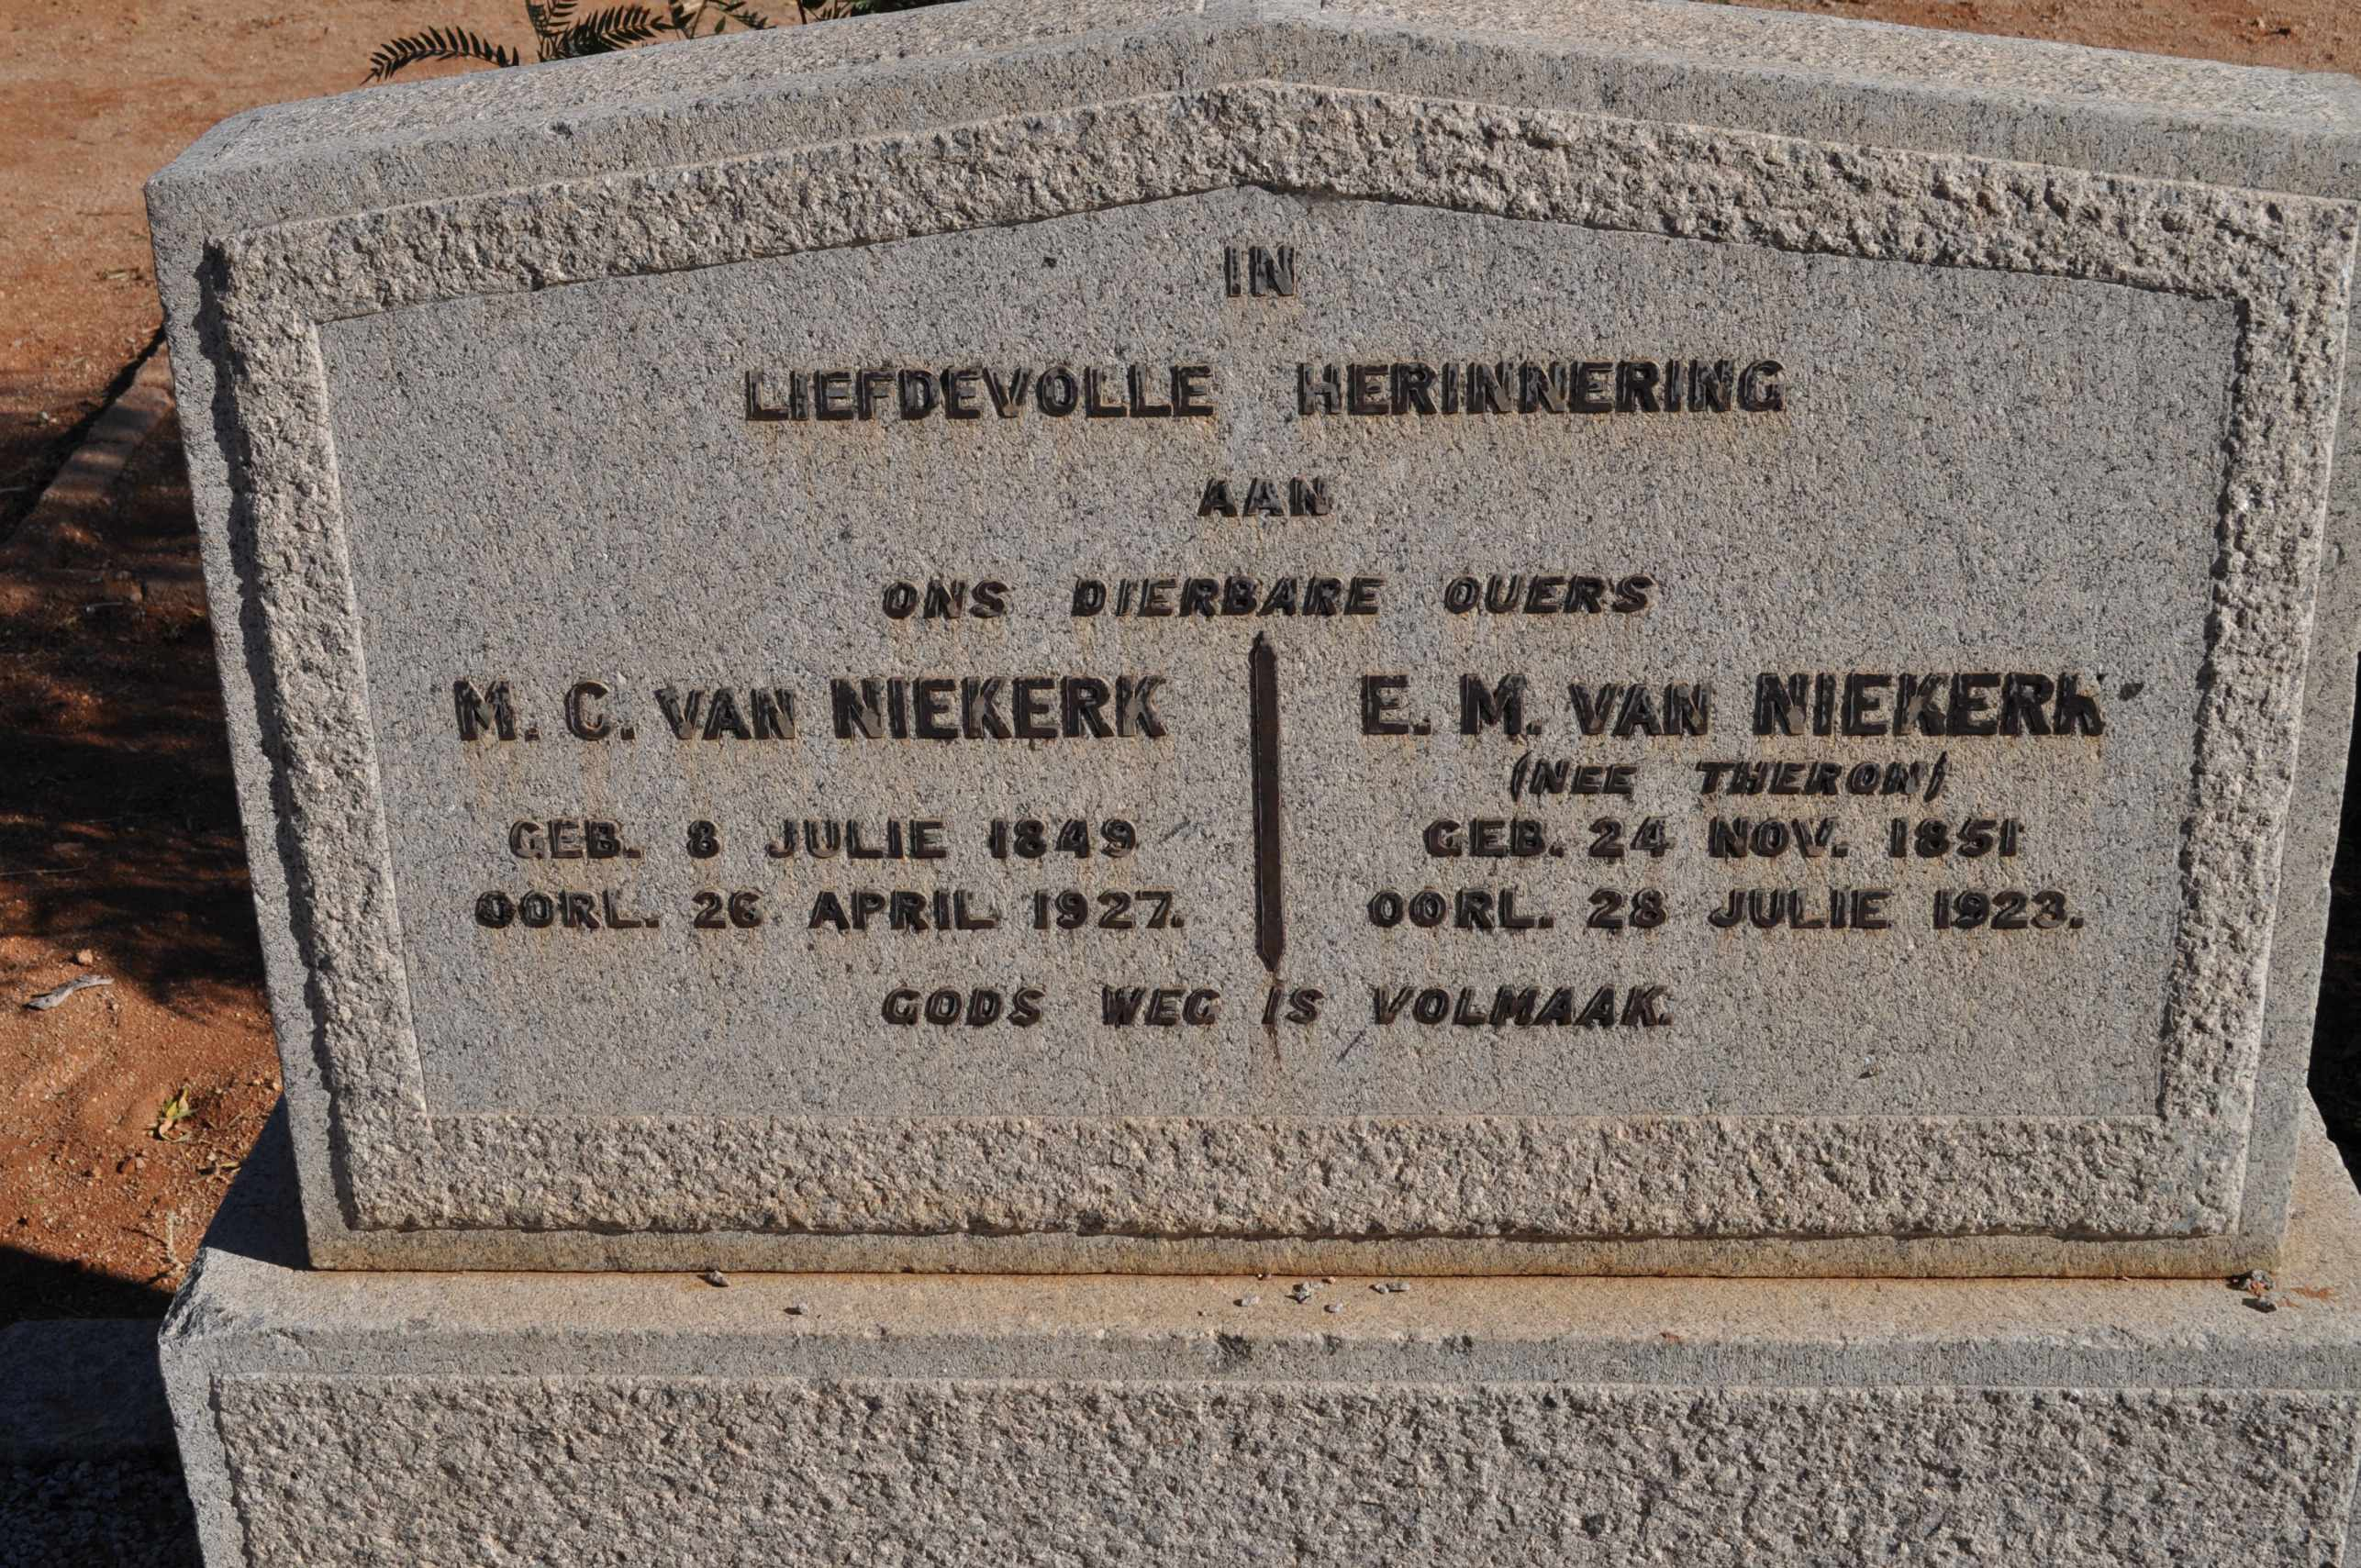 Van Niekerk, MC born 8 July 1849 died 26 April 1927 and EM nee Theron born 24 November 1851 died 28 July 1928